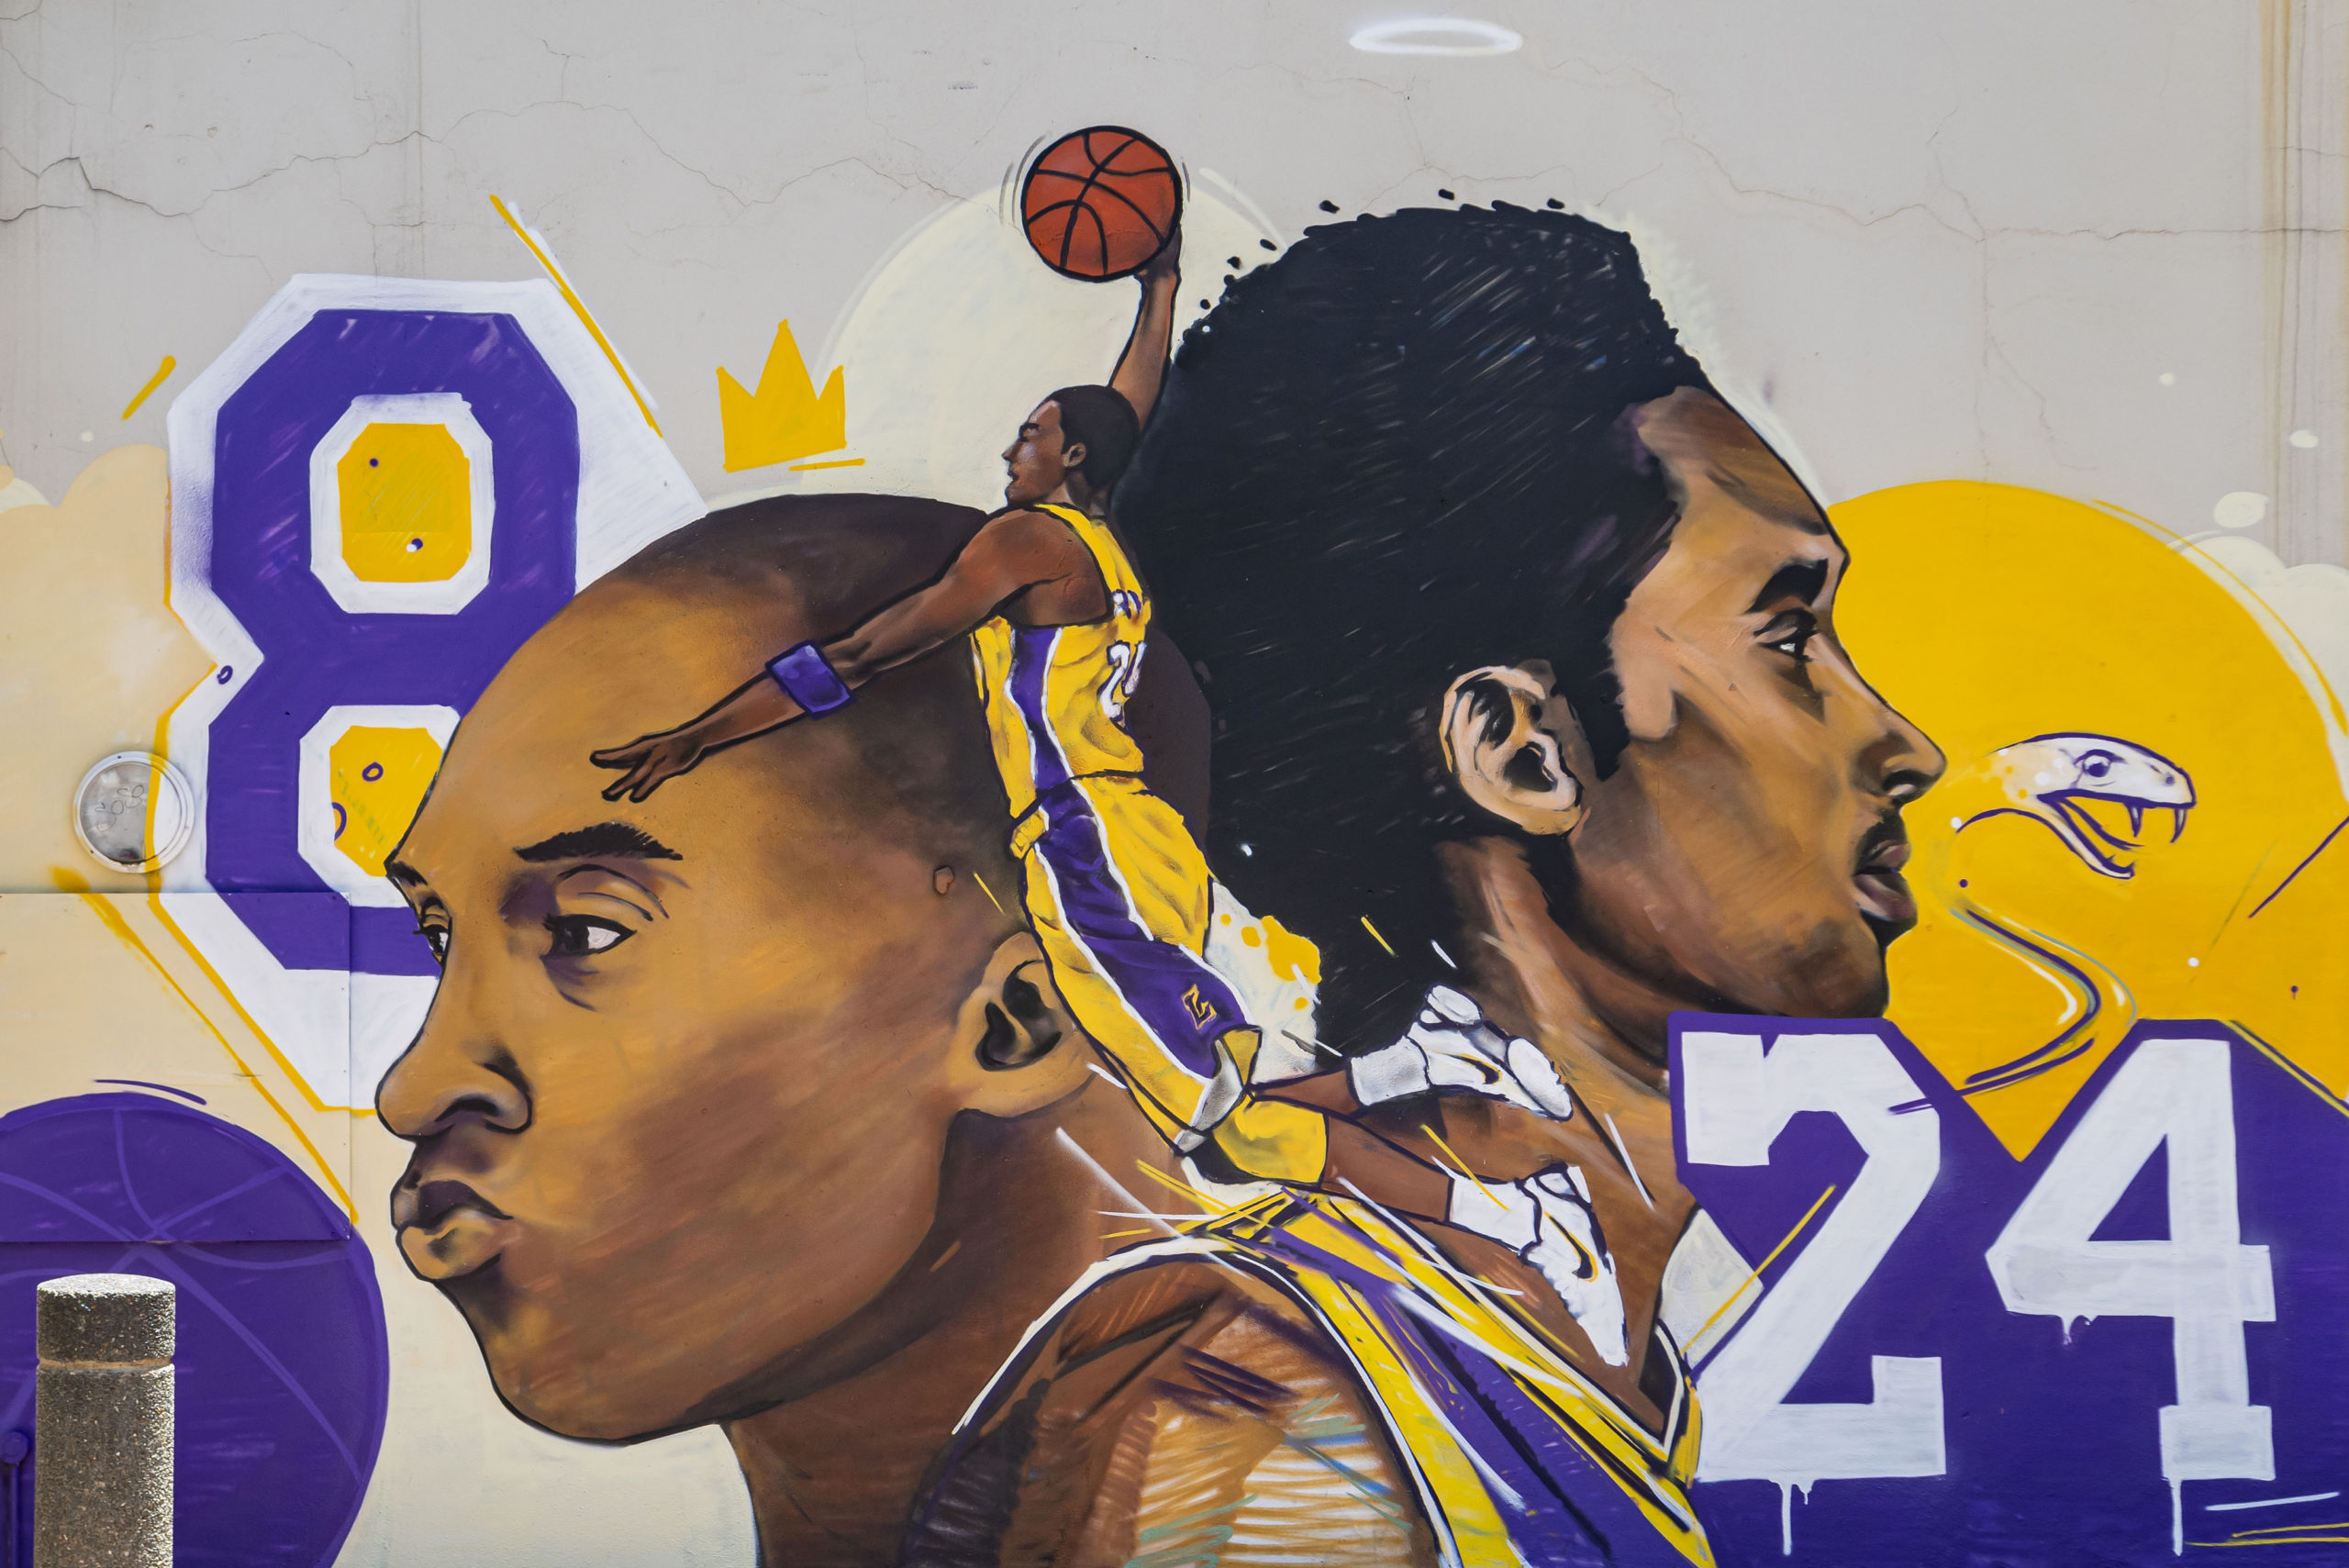 Hunting For Kicks Pays Tribute to Kobe Bryant With Wall Mural